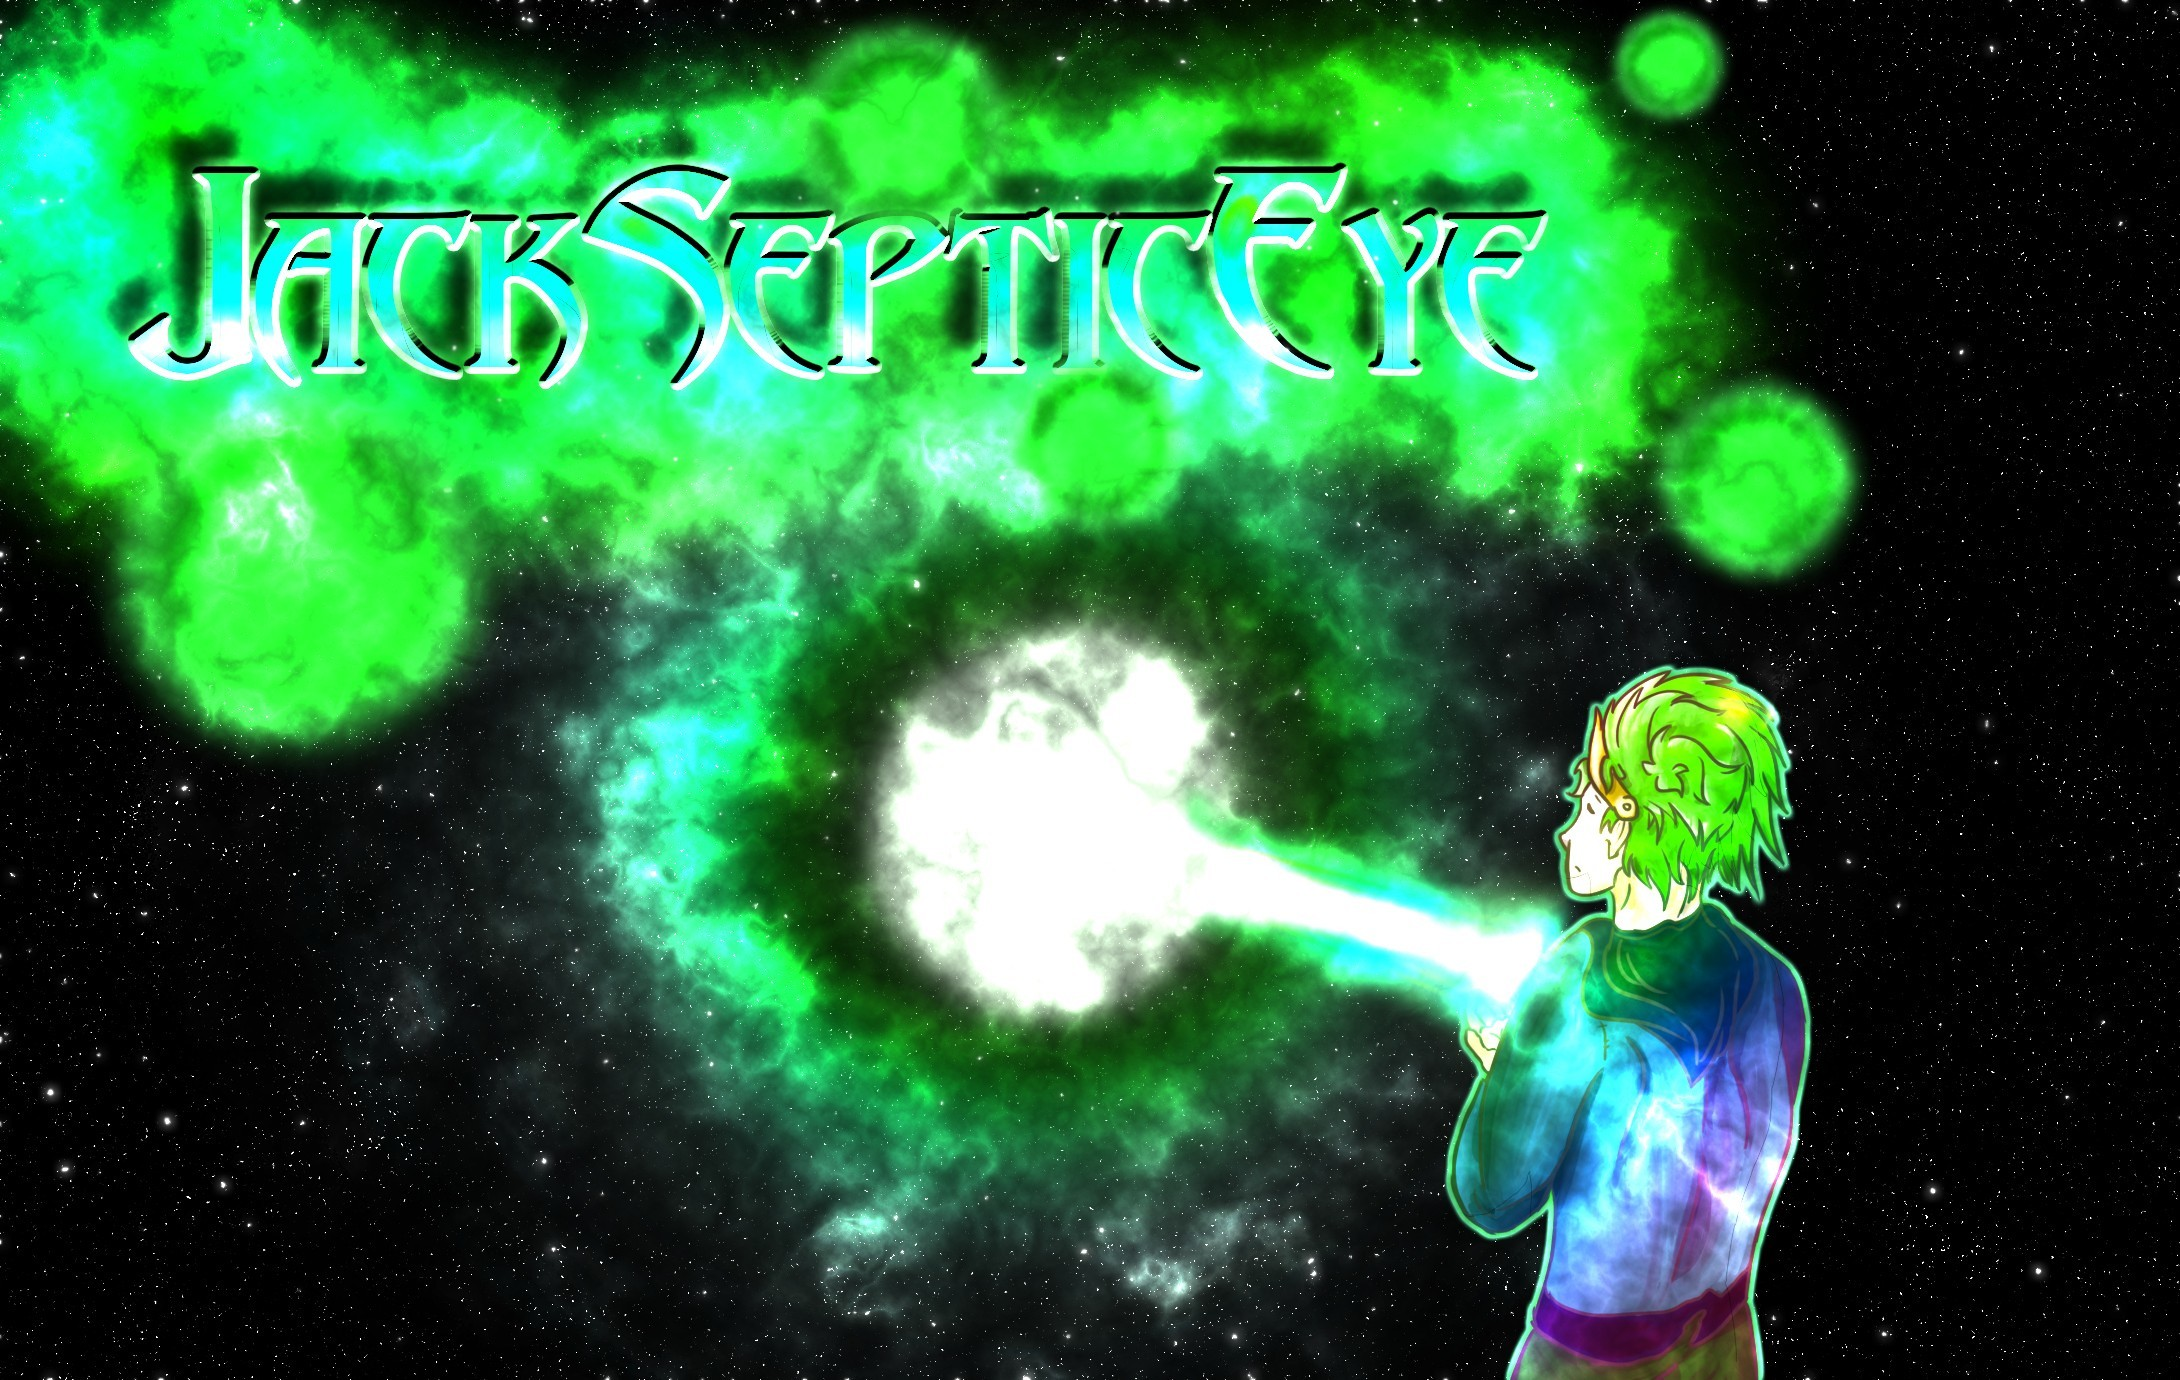 Jacksepticeye Wallpapers 72 images 2180x1380